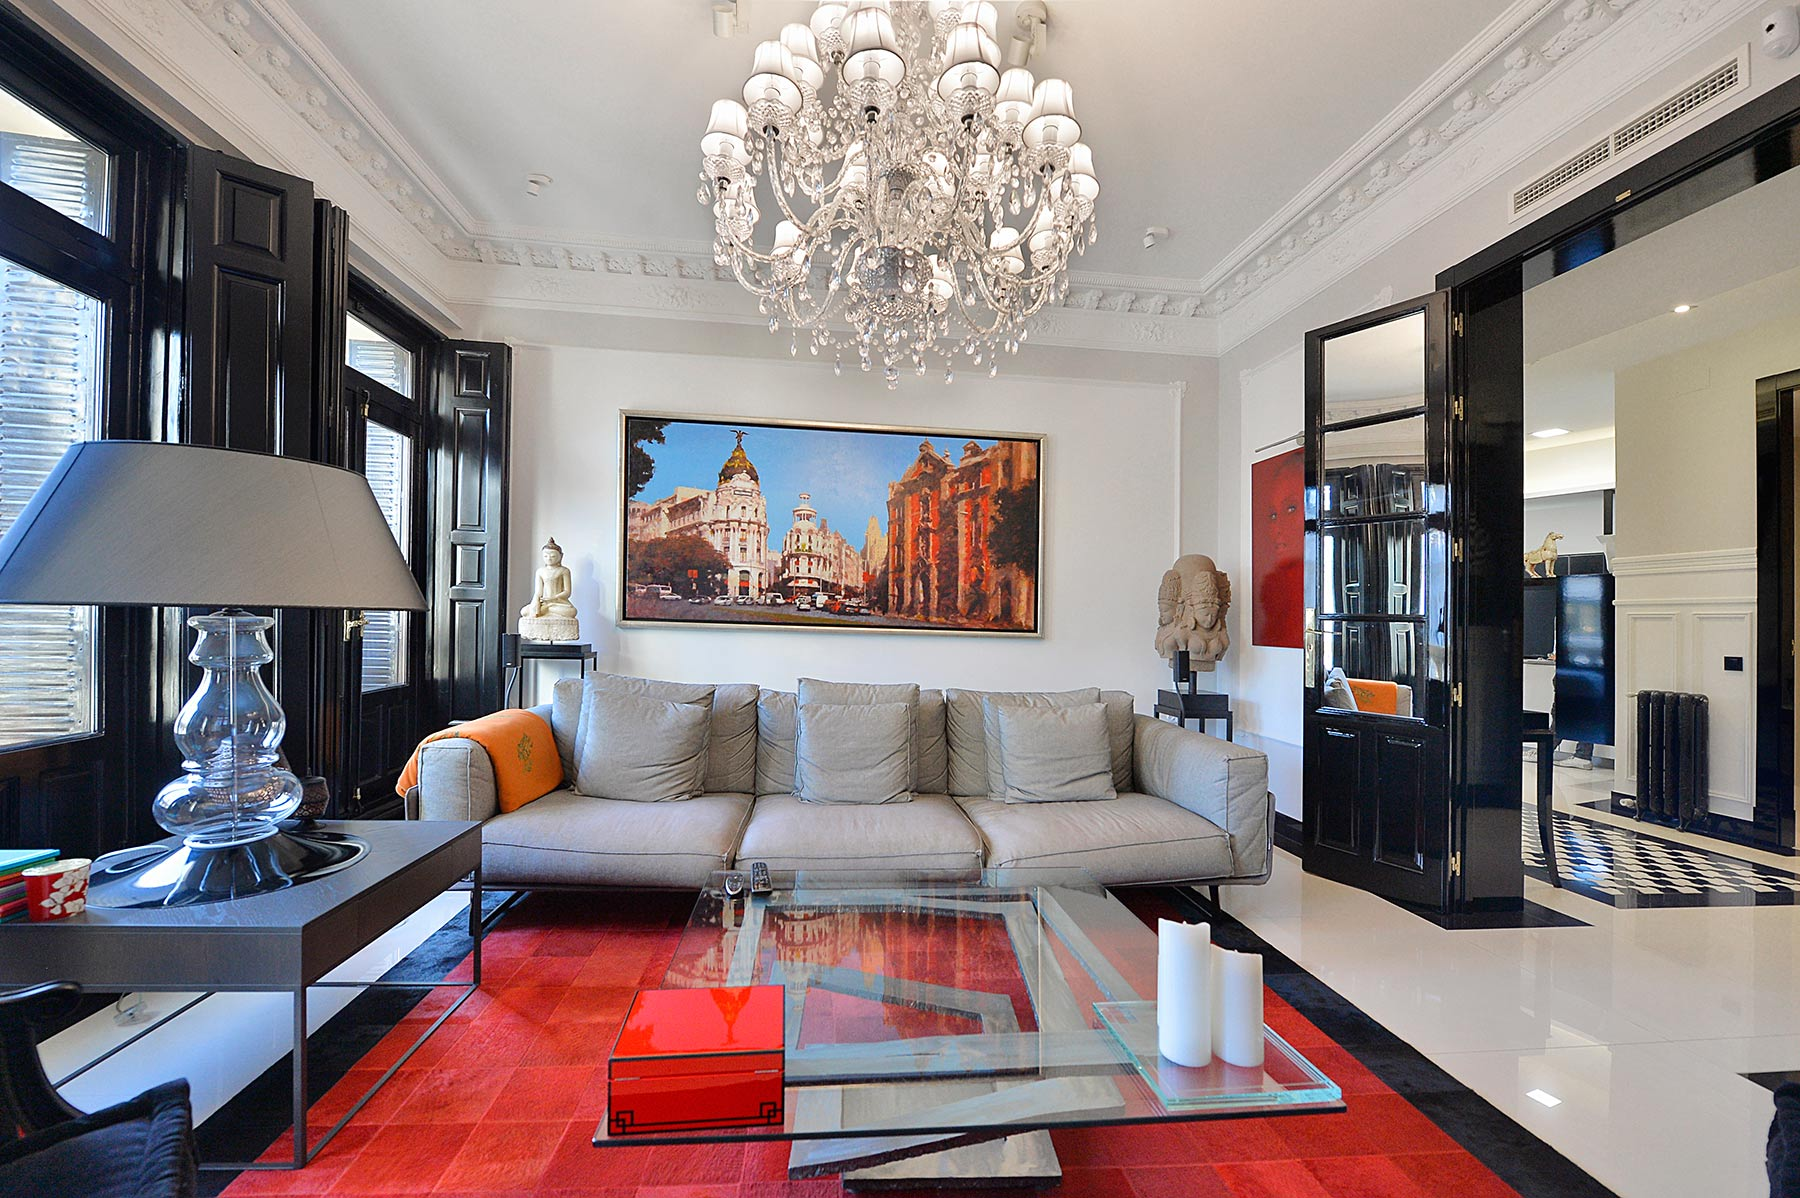 Single Family Home for Sale at Atico espectacular de diseño Madrid, Madrid, Spain